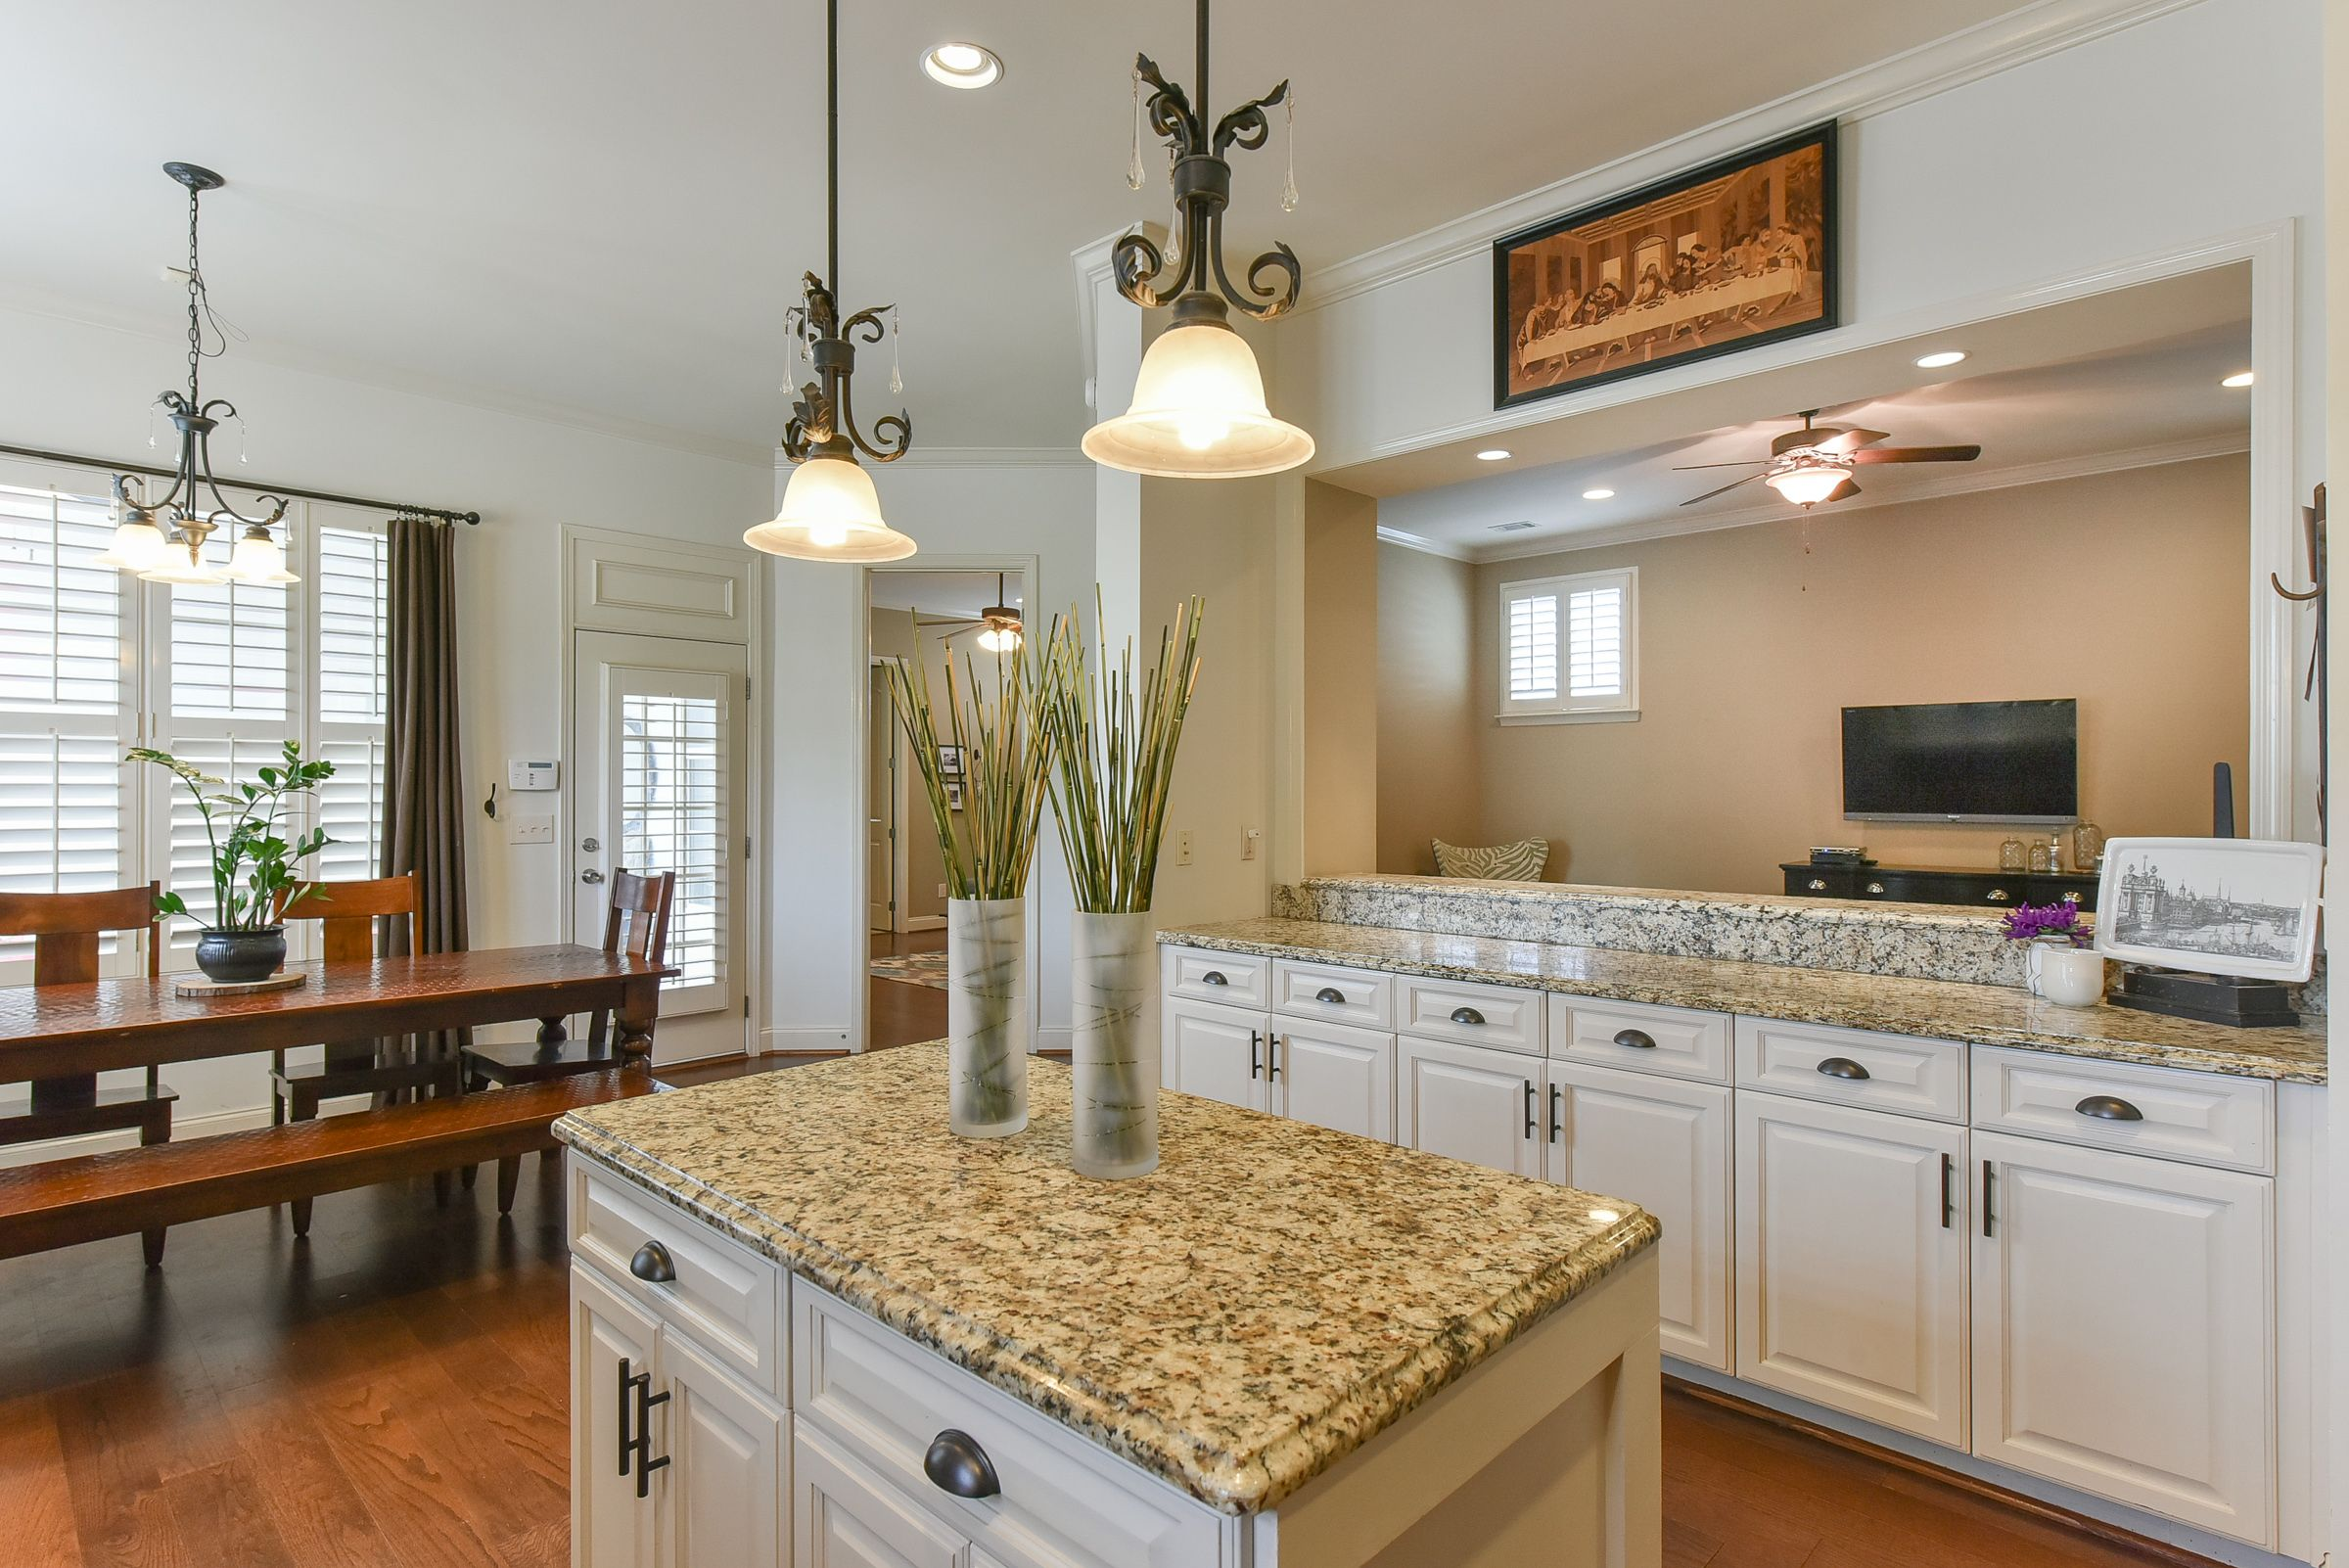 Mix in some rustic elements to your more formal kitchen to ...